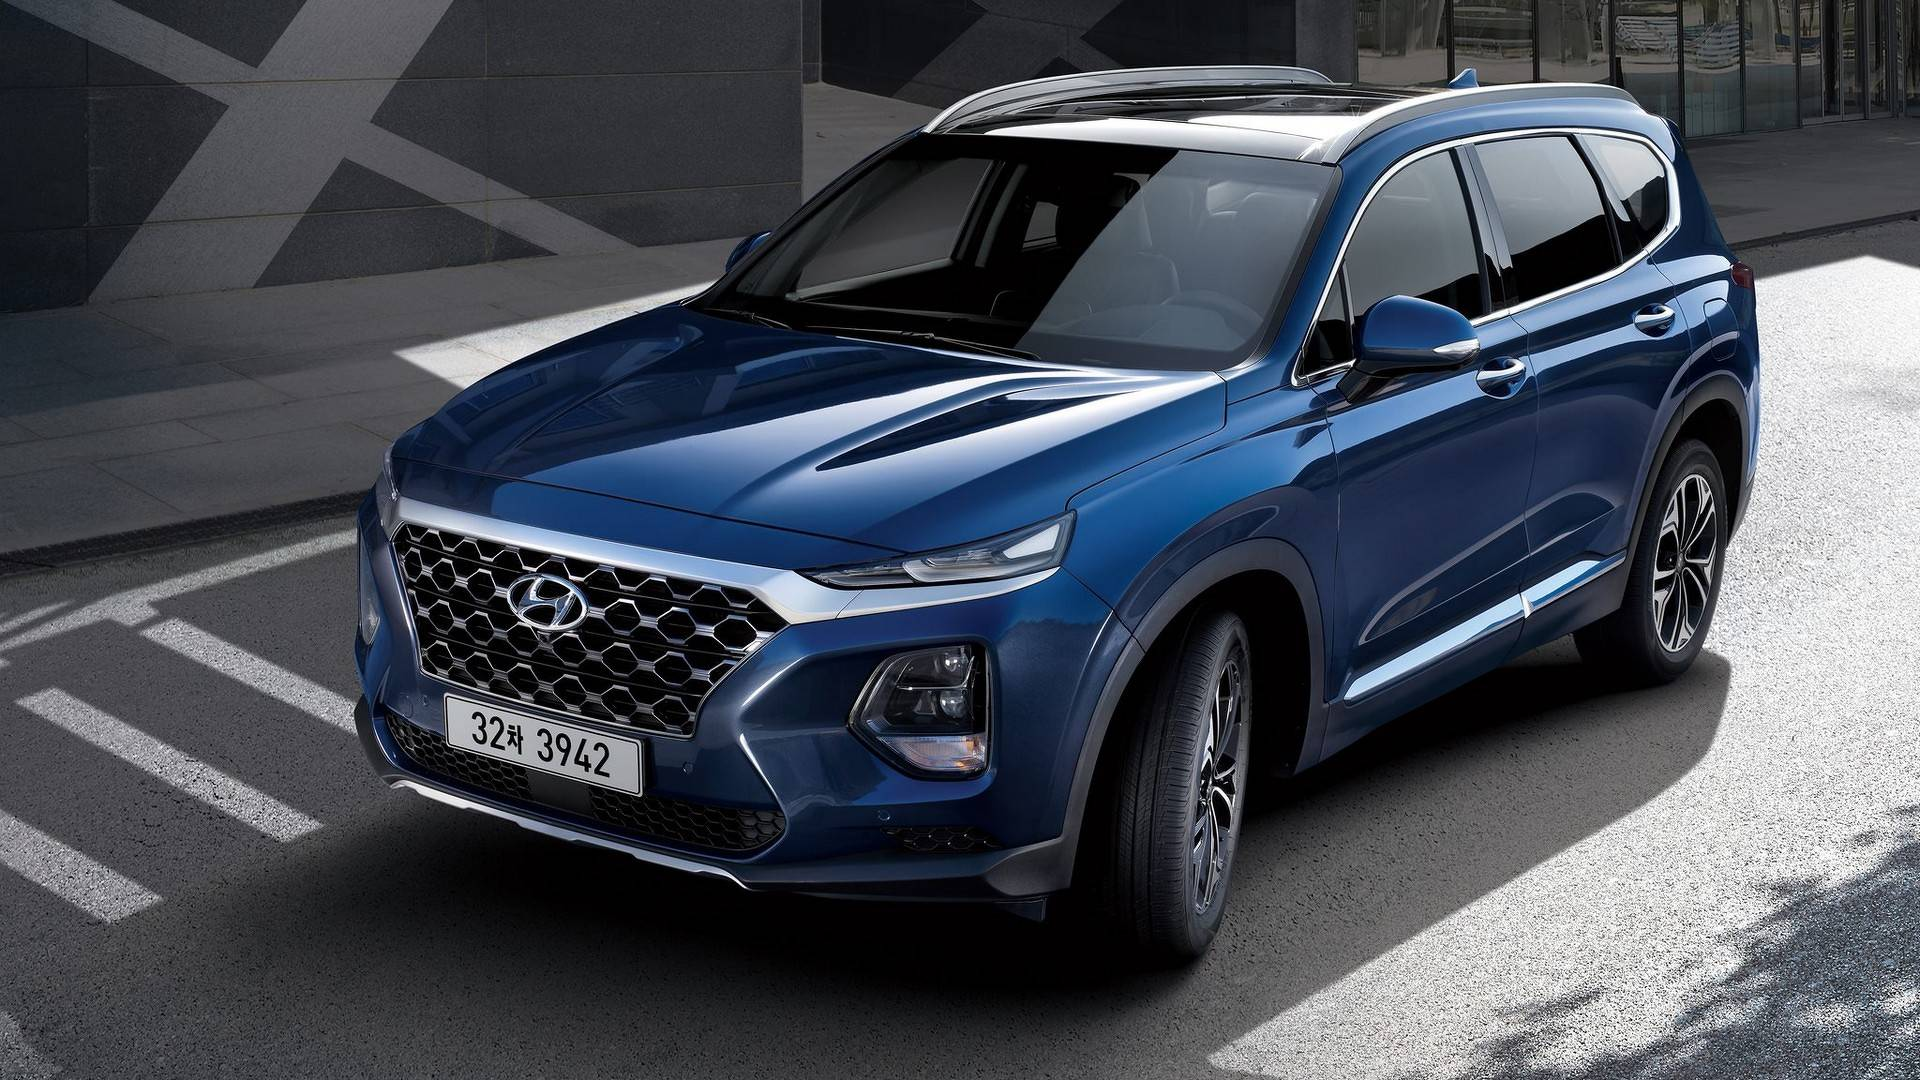 Over time, your vehicle's radiator can corrode and wear out, causing leaks and overheating. 2019 Hyundai Santa Fe Priced From $25,500 - autoevolution